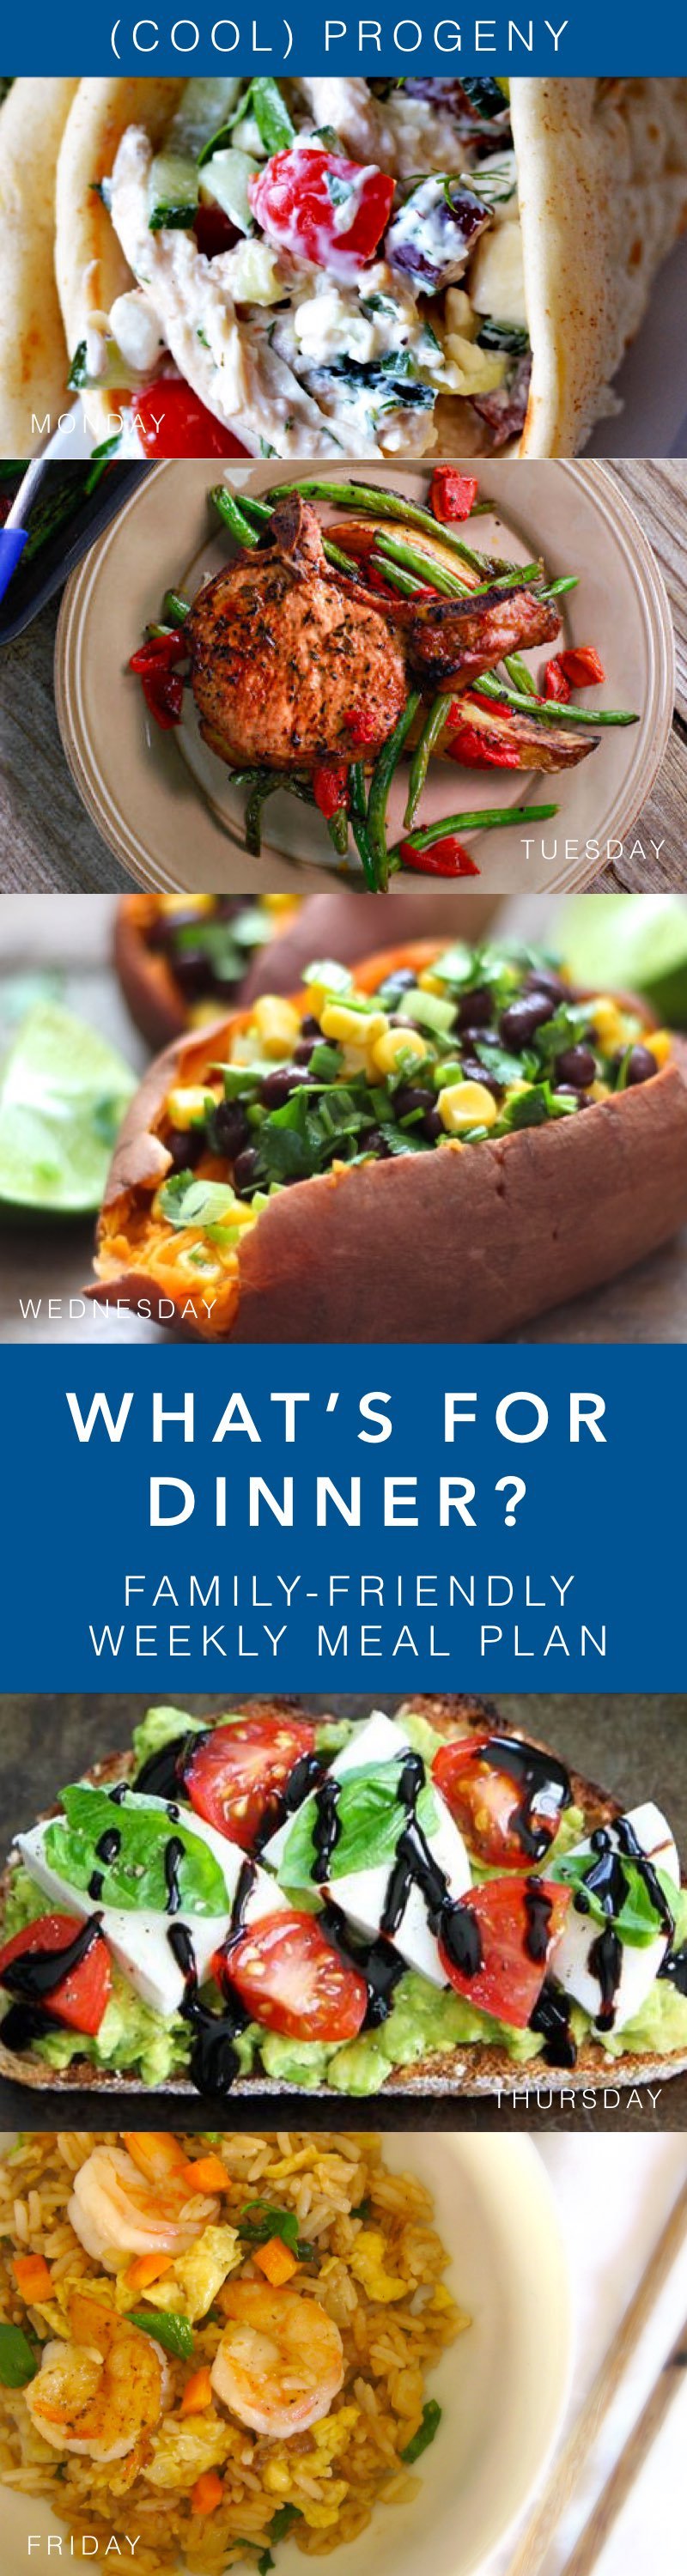 Family-Friendly Dinners This Week - (cool) progeny